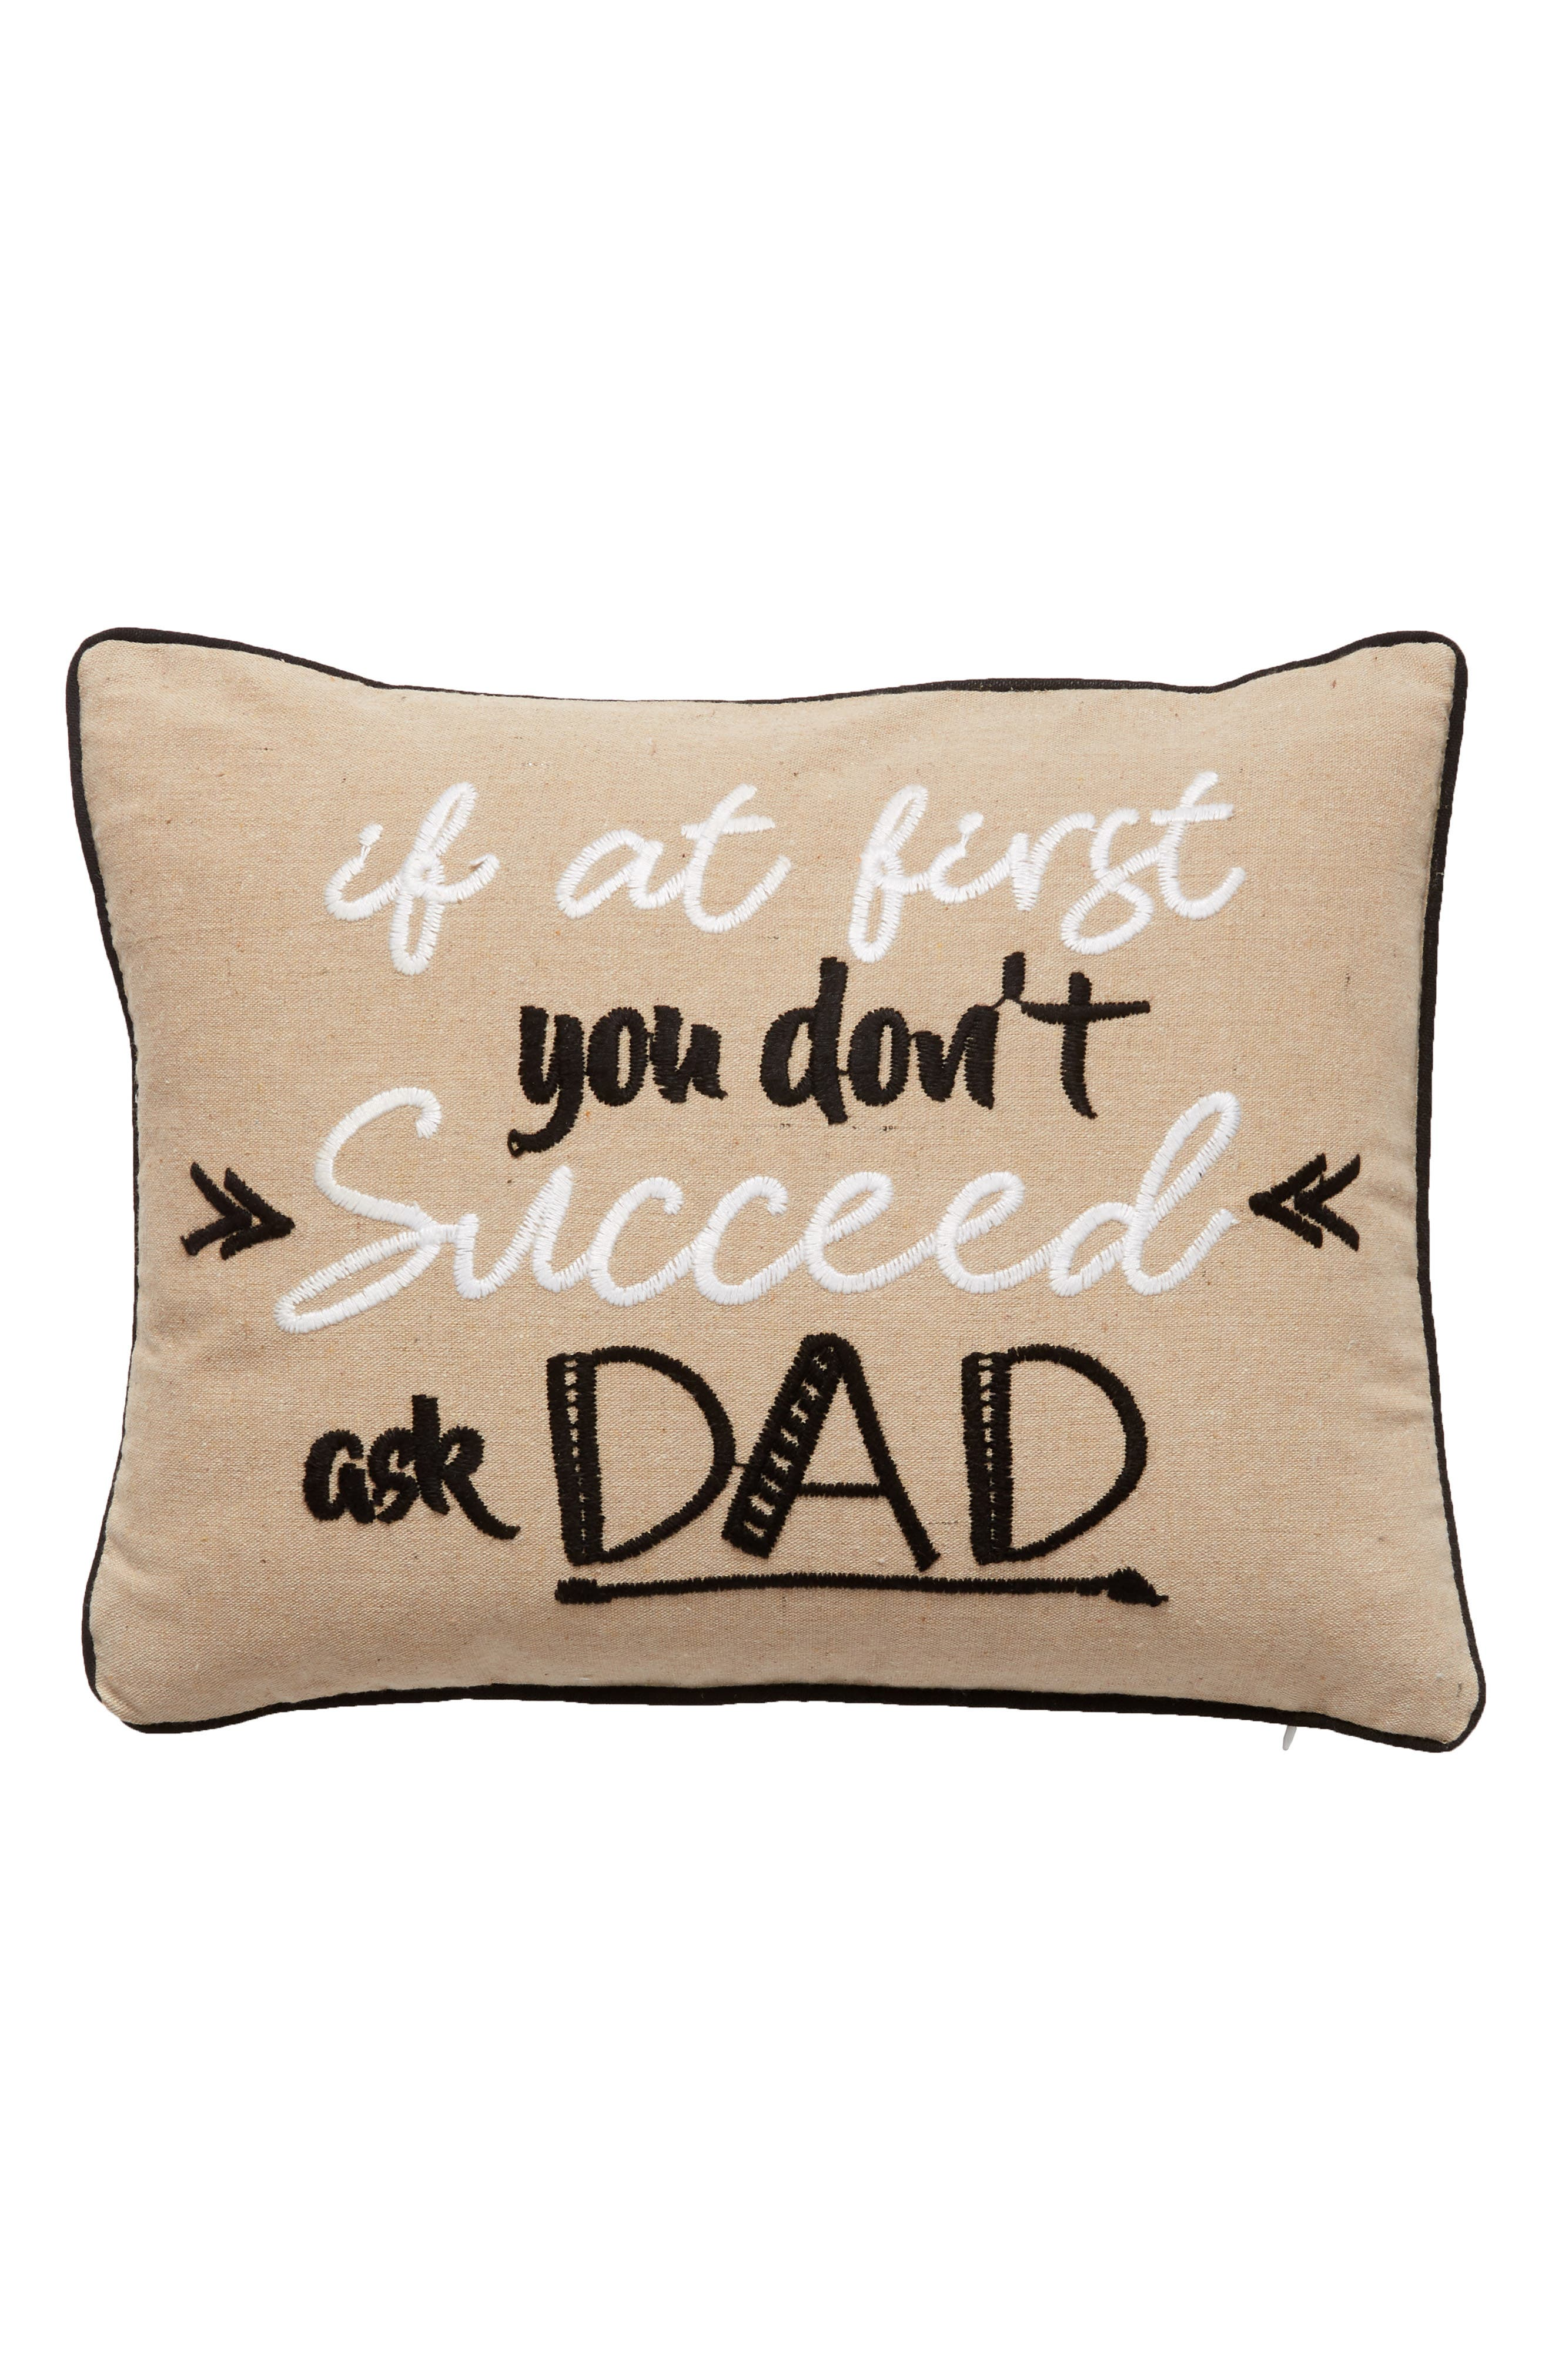 Ask Dad Accent Pillow,                             Main thumbnail 1, color,                             Taupe